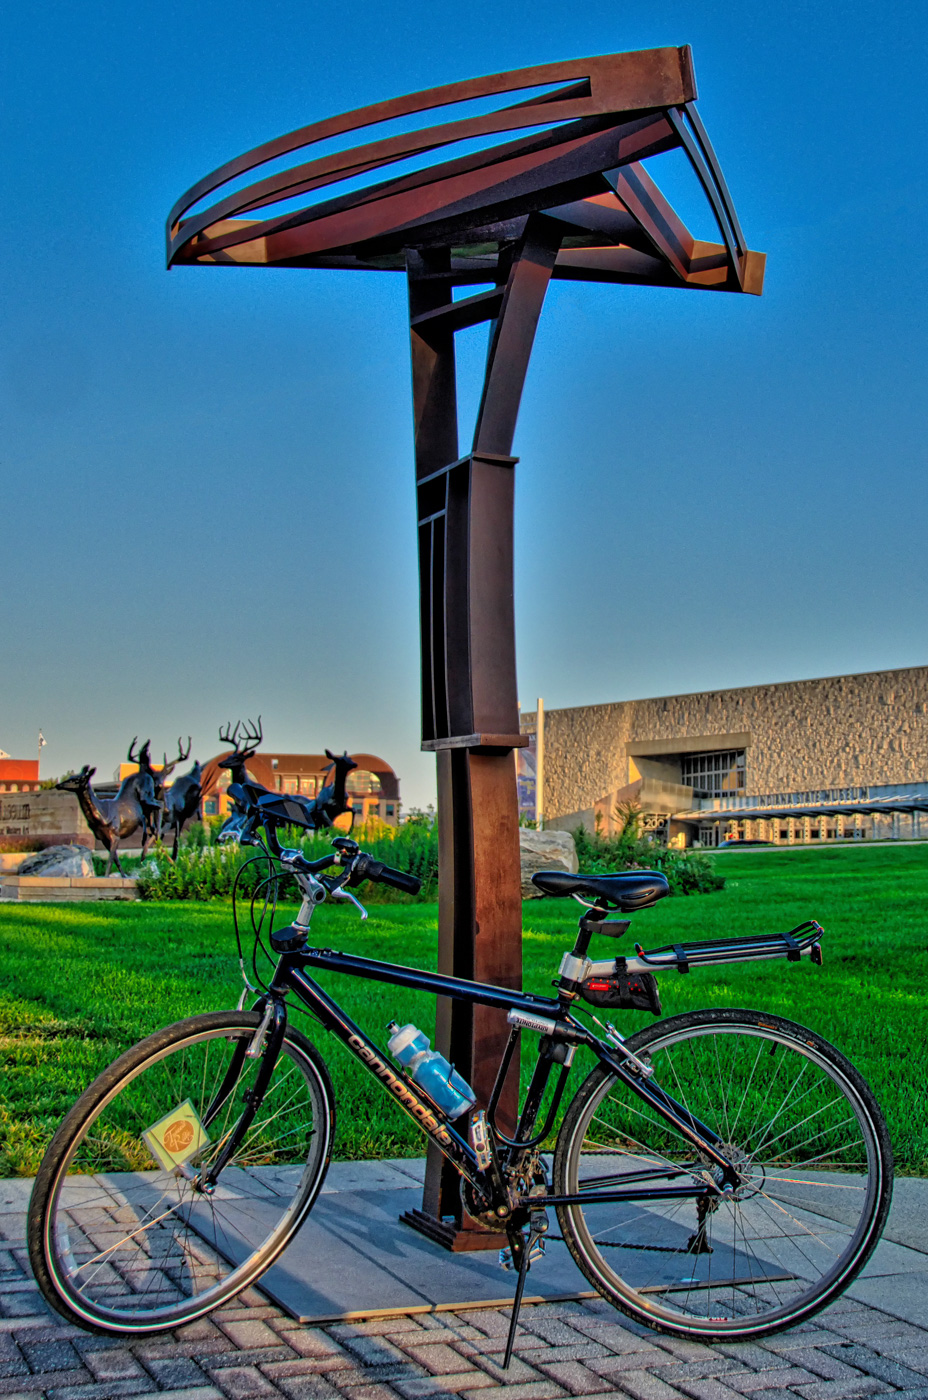 My Cannondale bike in front of MINUTEMAN.